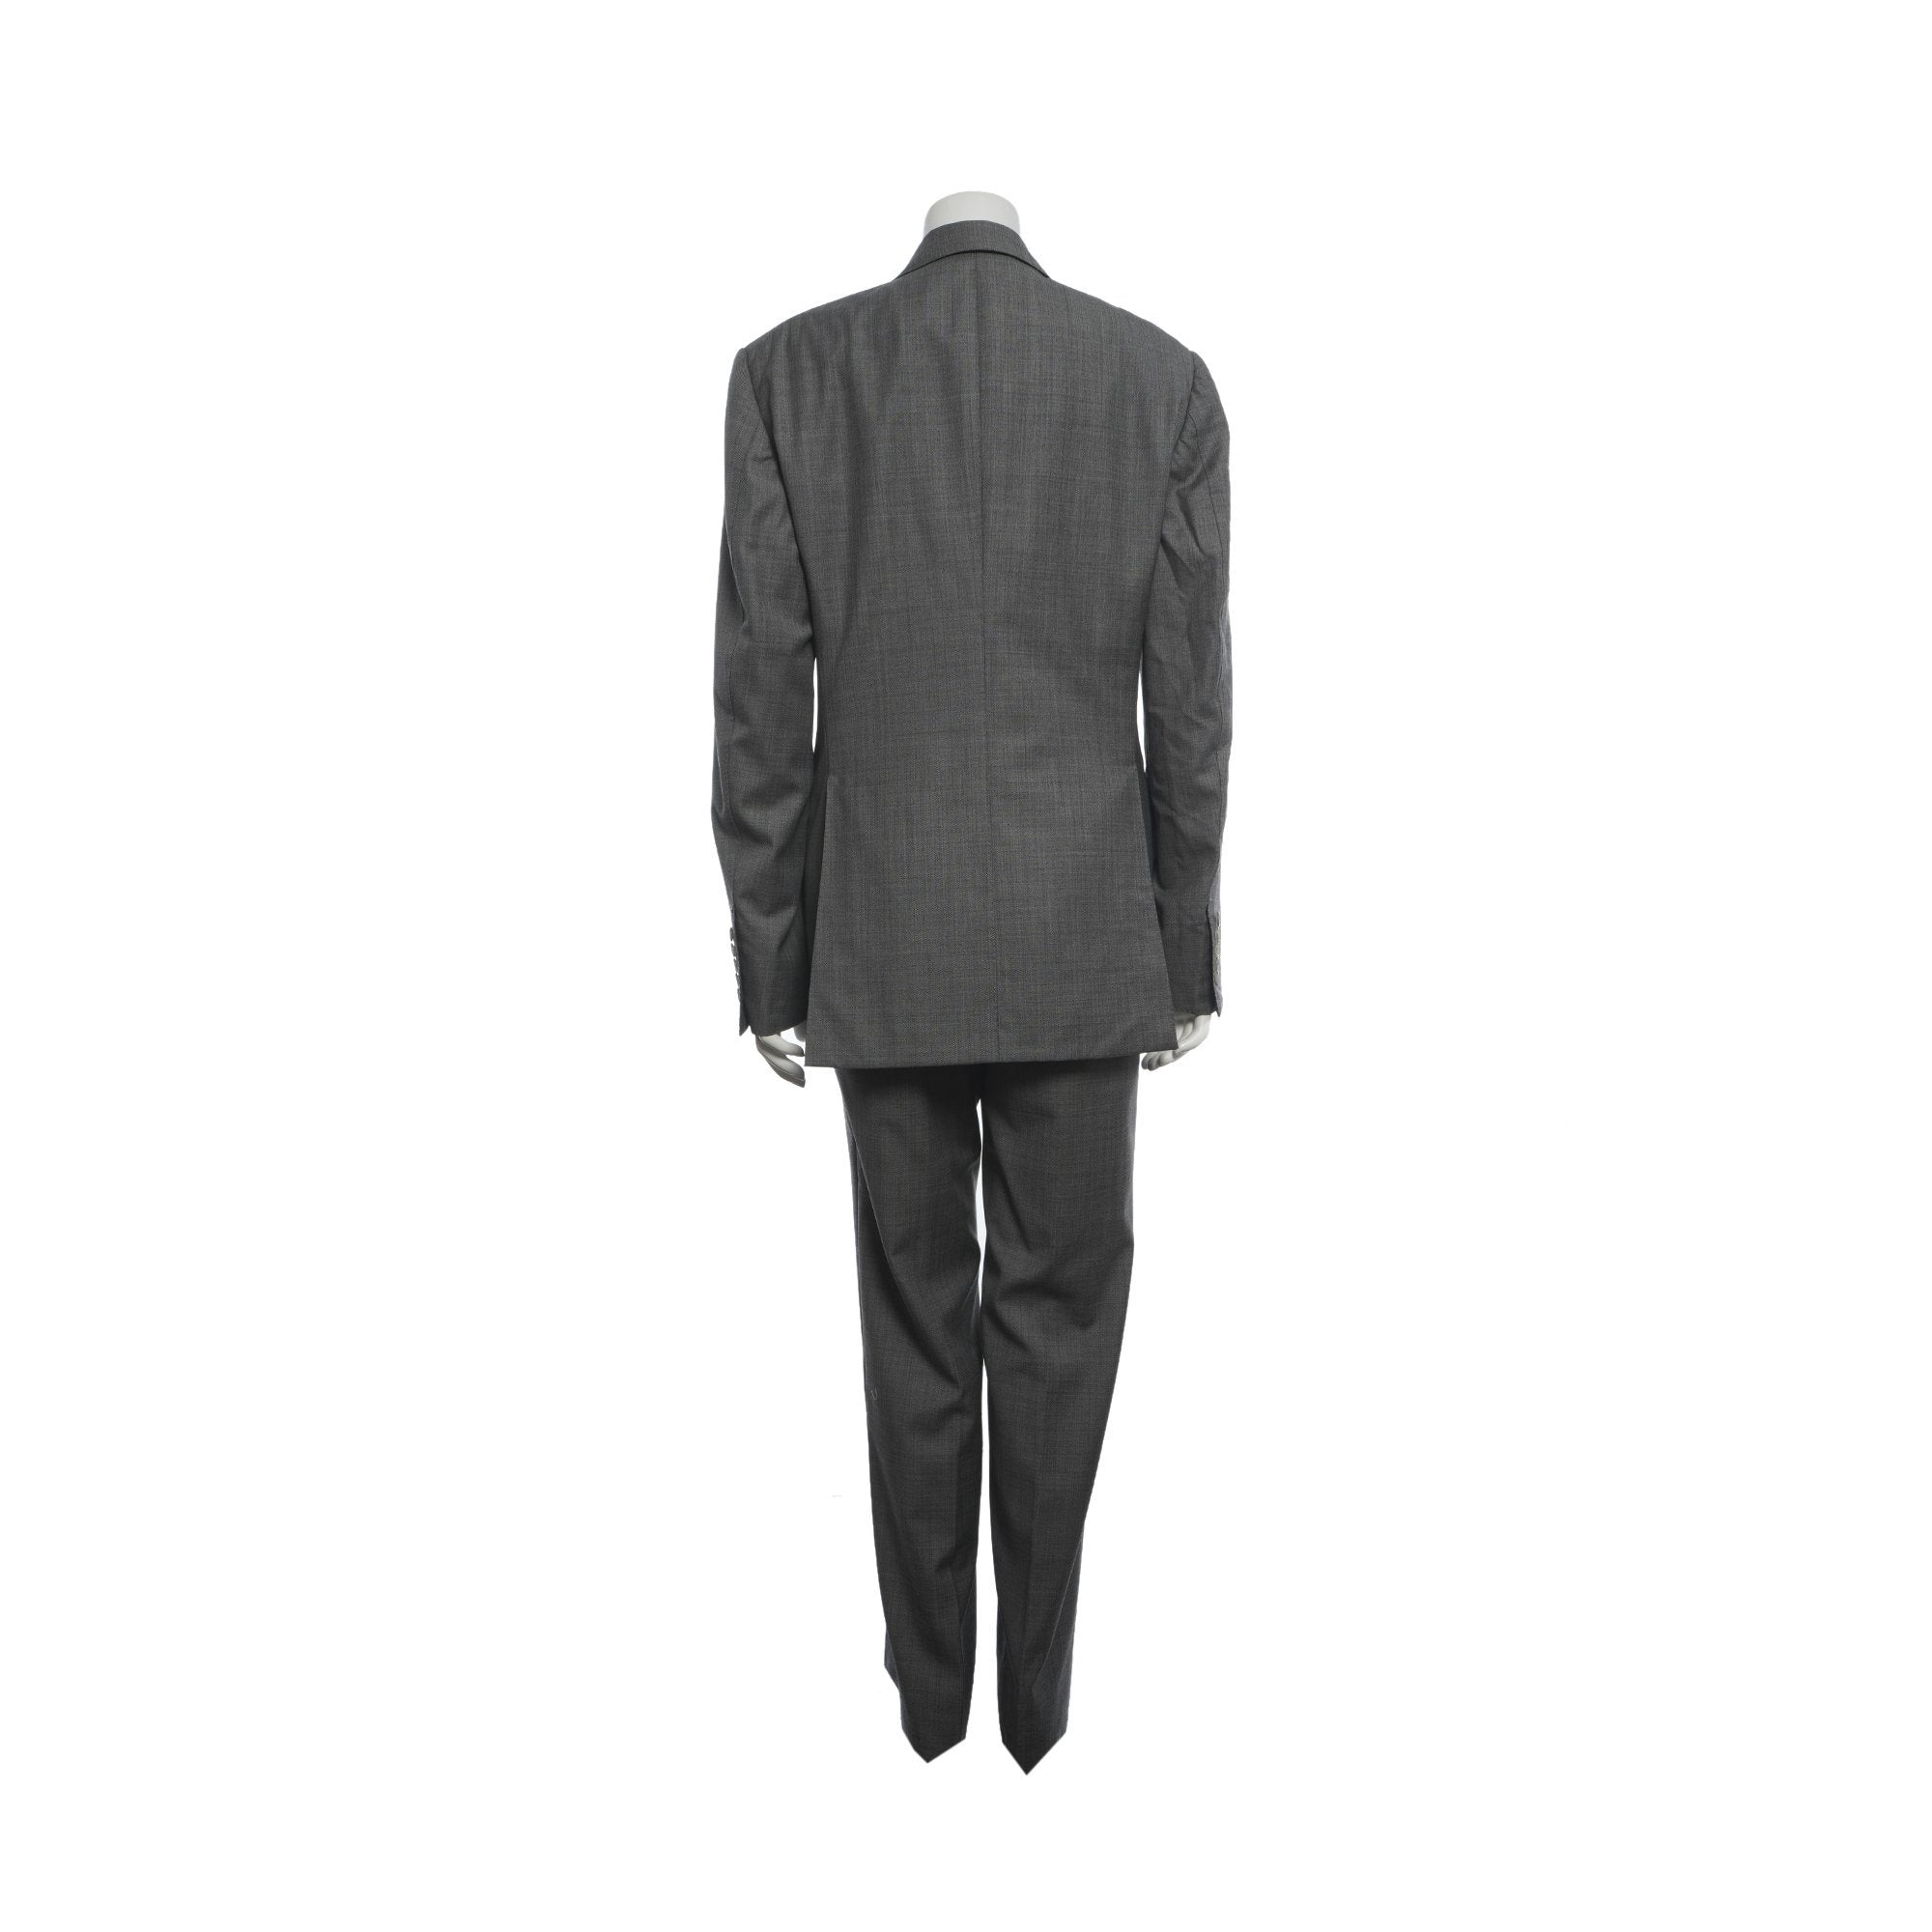 Tom Ford Two Button Peak Lapel Grey Suit